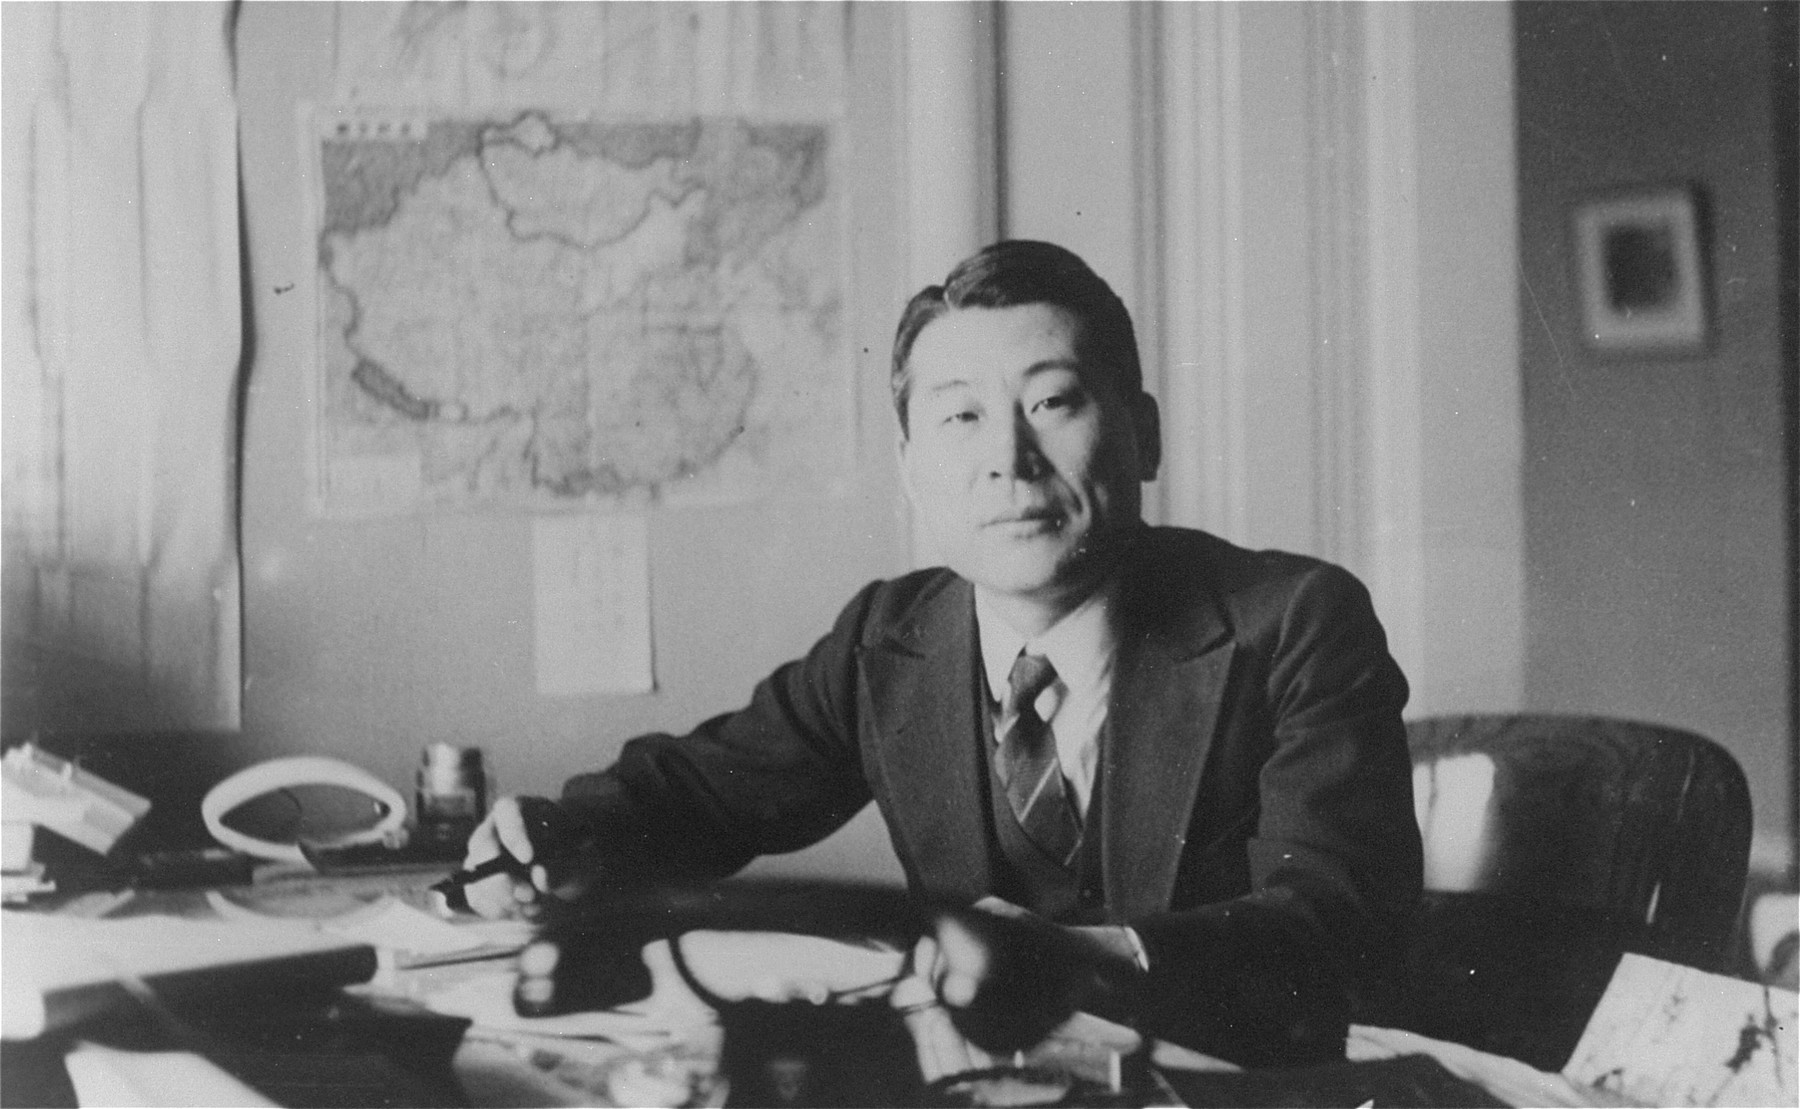 Chiune Sugihara sits at a desk in his office.